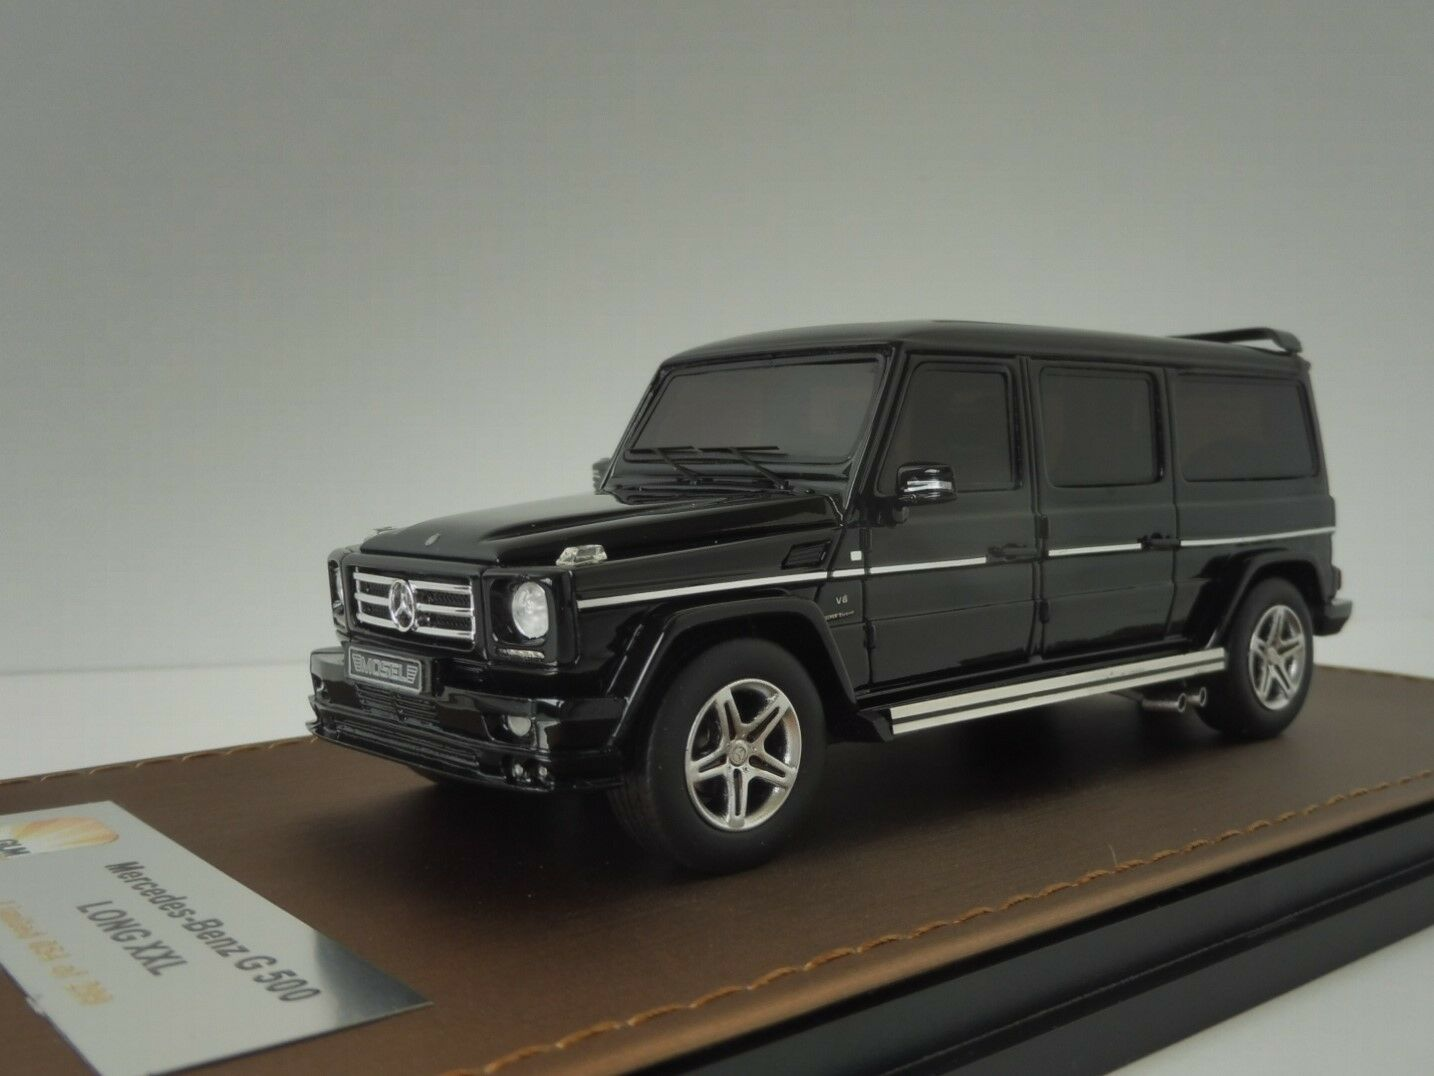 Mercedes-Benz G500 Long XXL Nero 1/43 Glm -43203703 Classe-G G-Class Mercedes